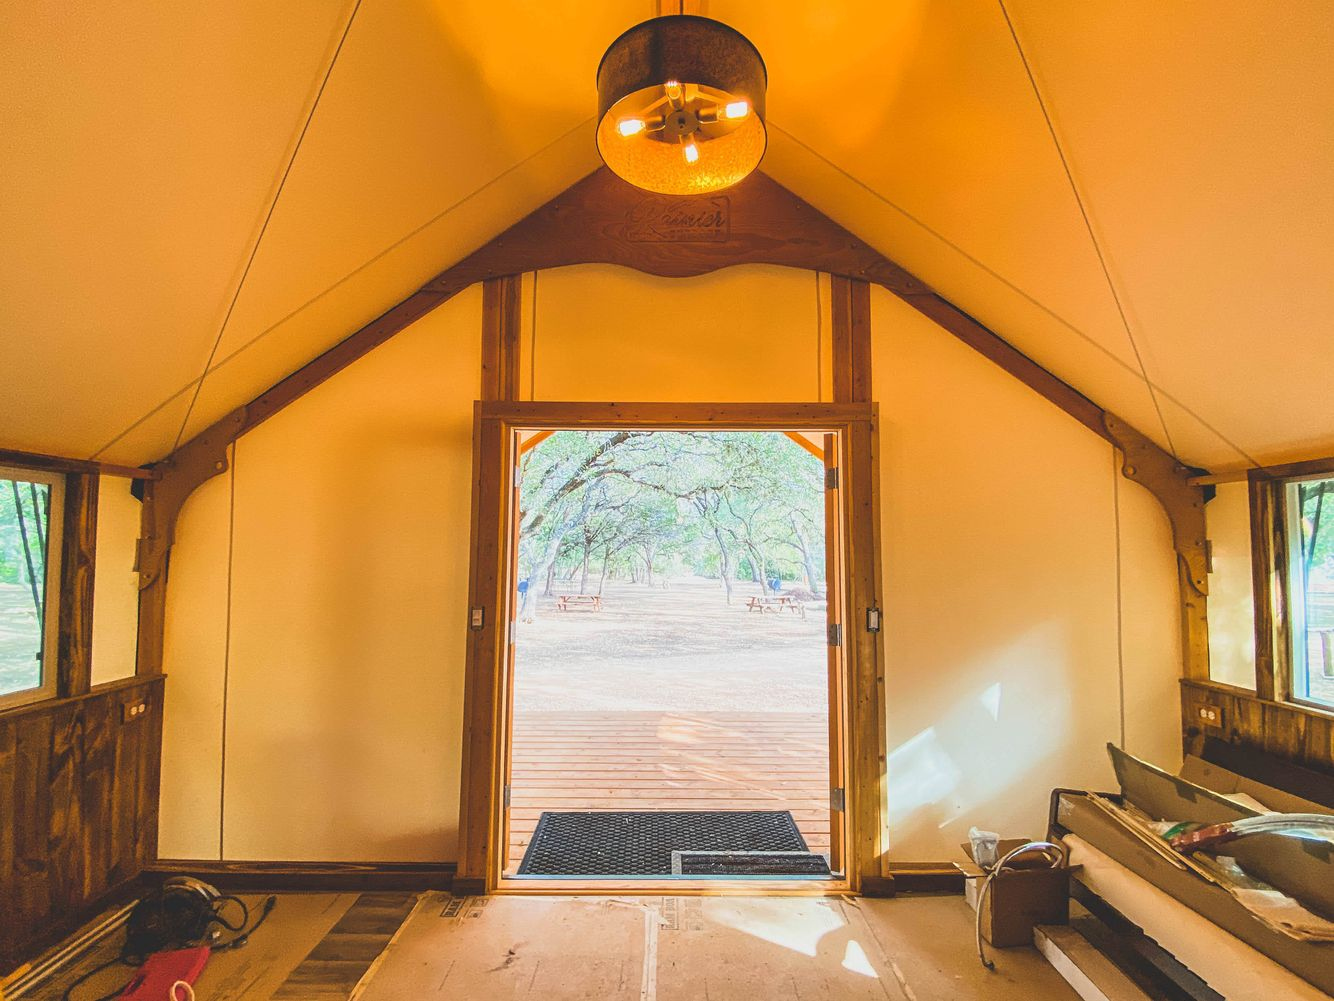 Interior of Safari Tent looking out